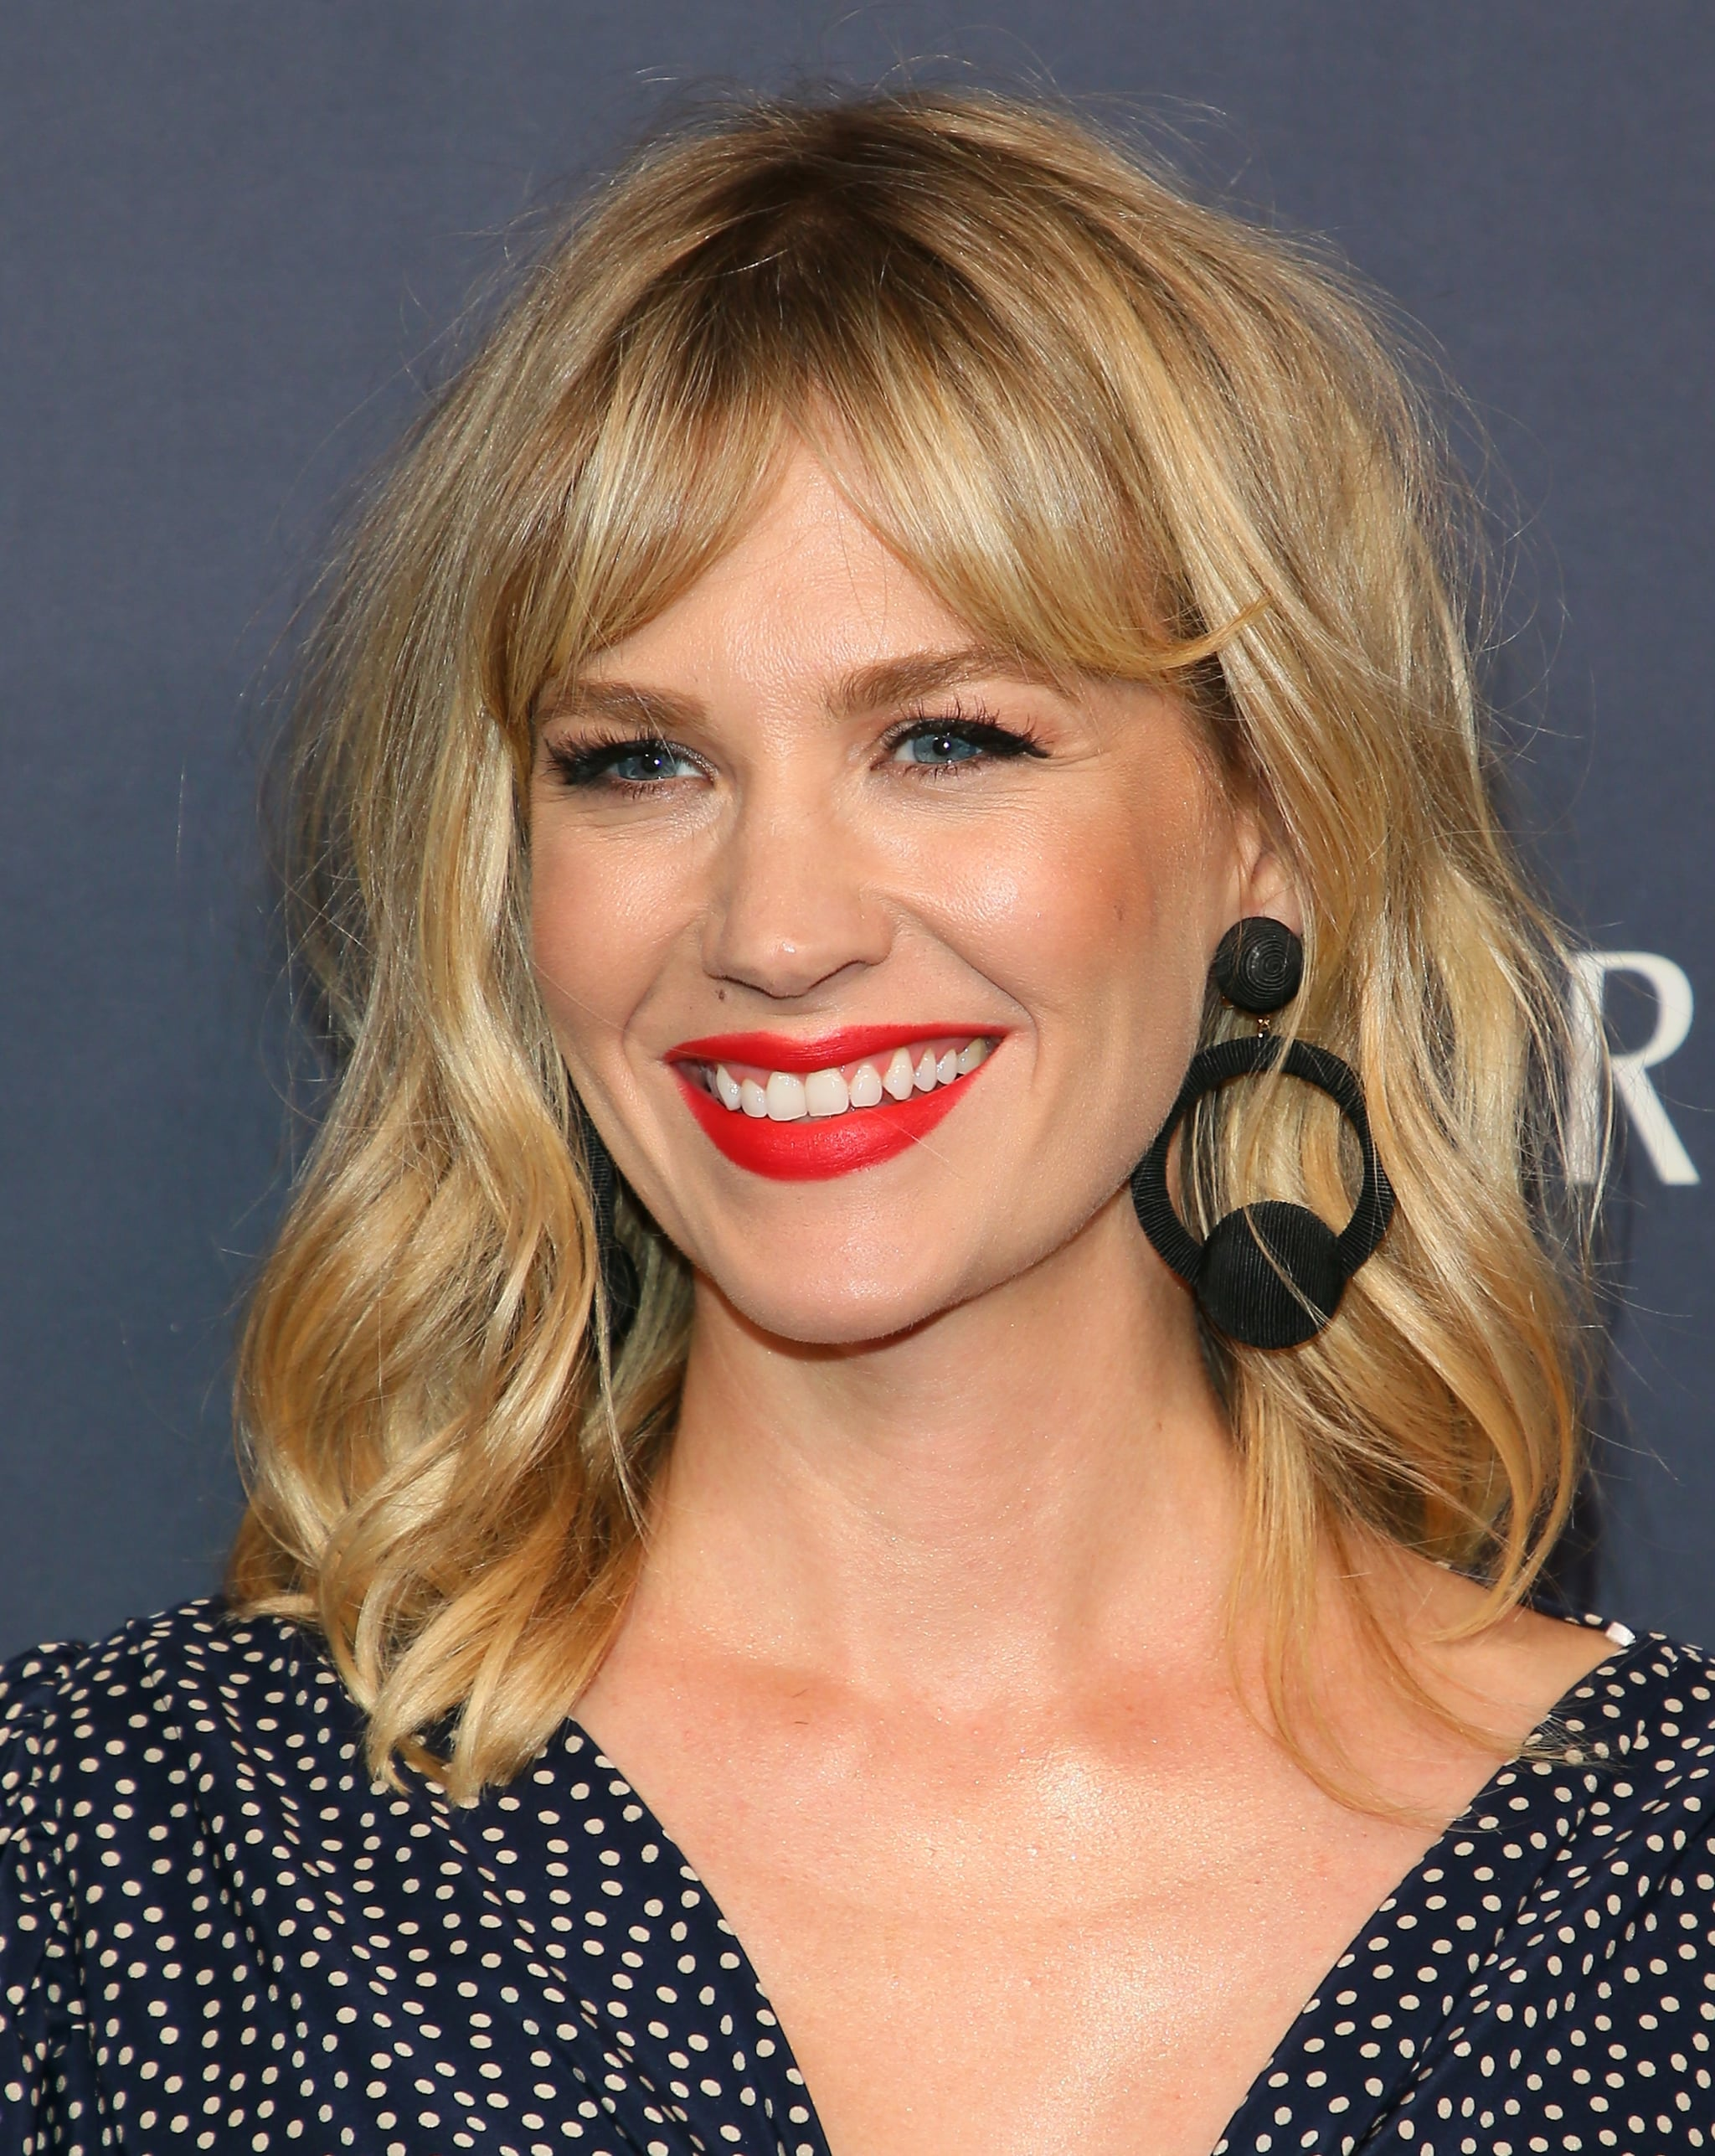 Midi Lob With Curtain Bangs 10 Refreshingly Short Haircuts That Are Making Waves In 2018 Popsugar Beauty Photo 11